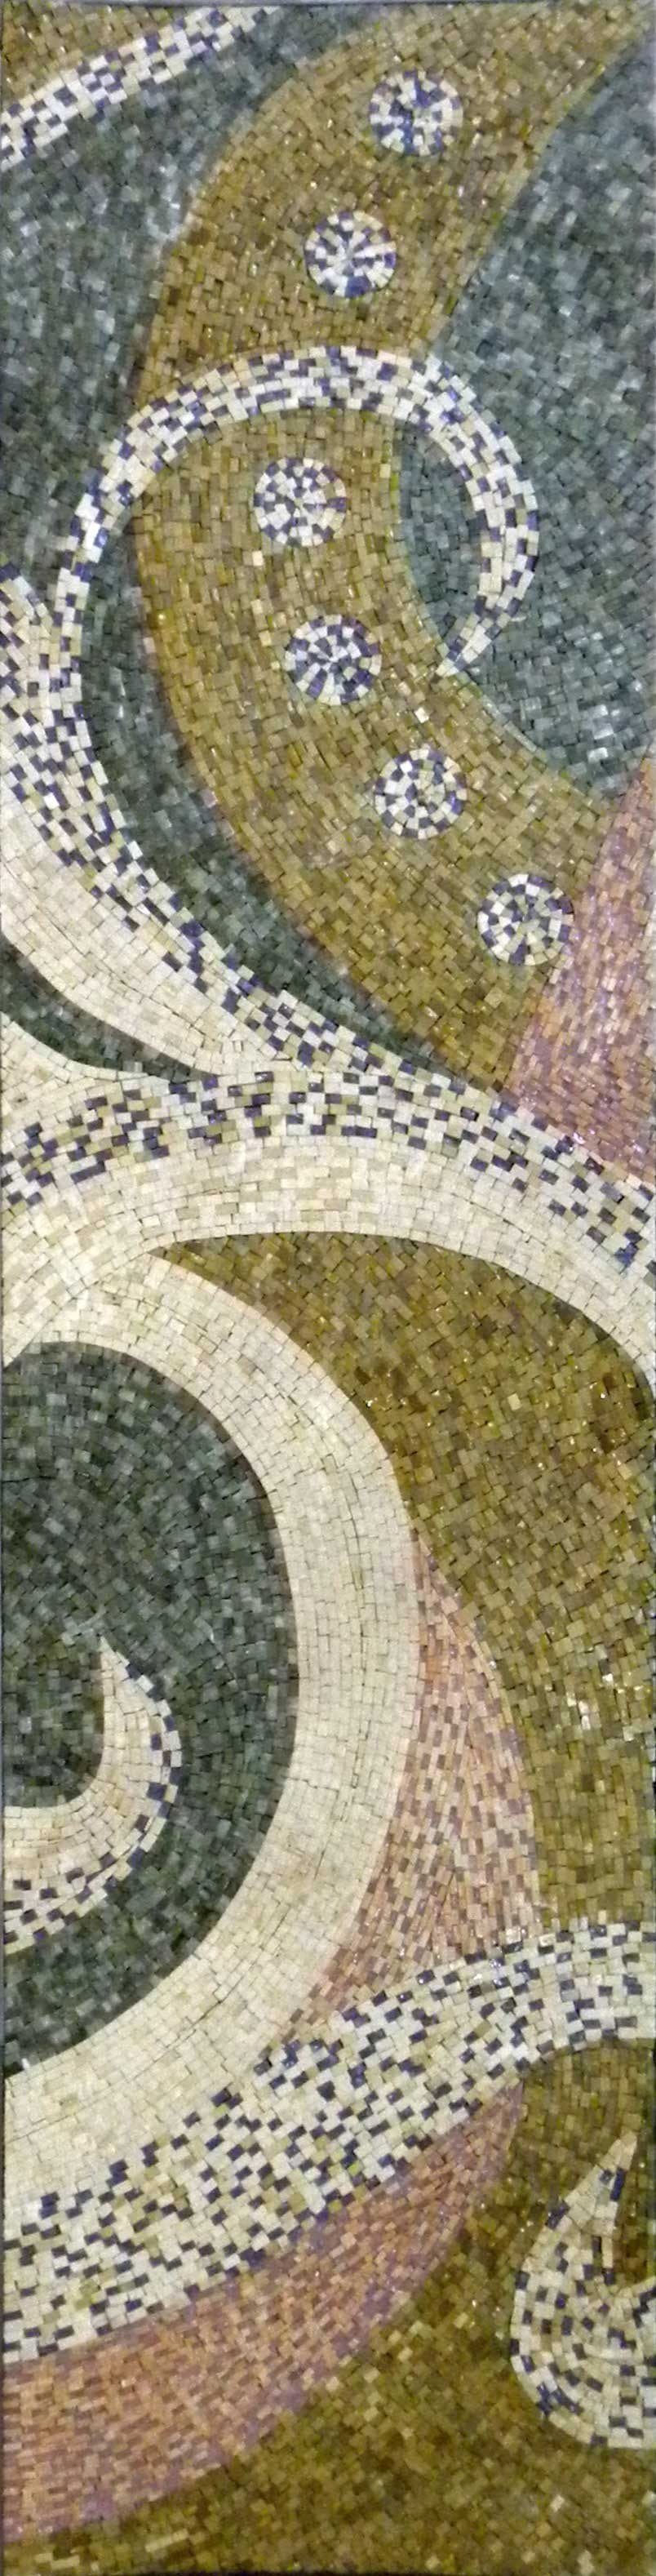 Abstract Mosaic Pattern - Curly Leaves